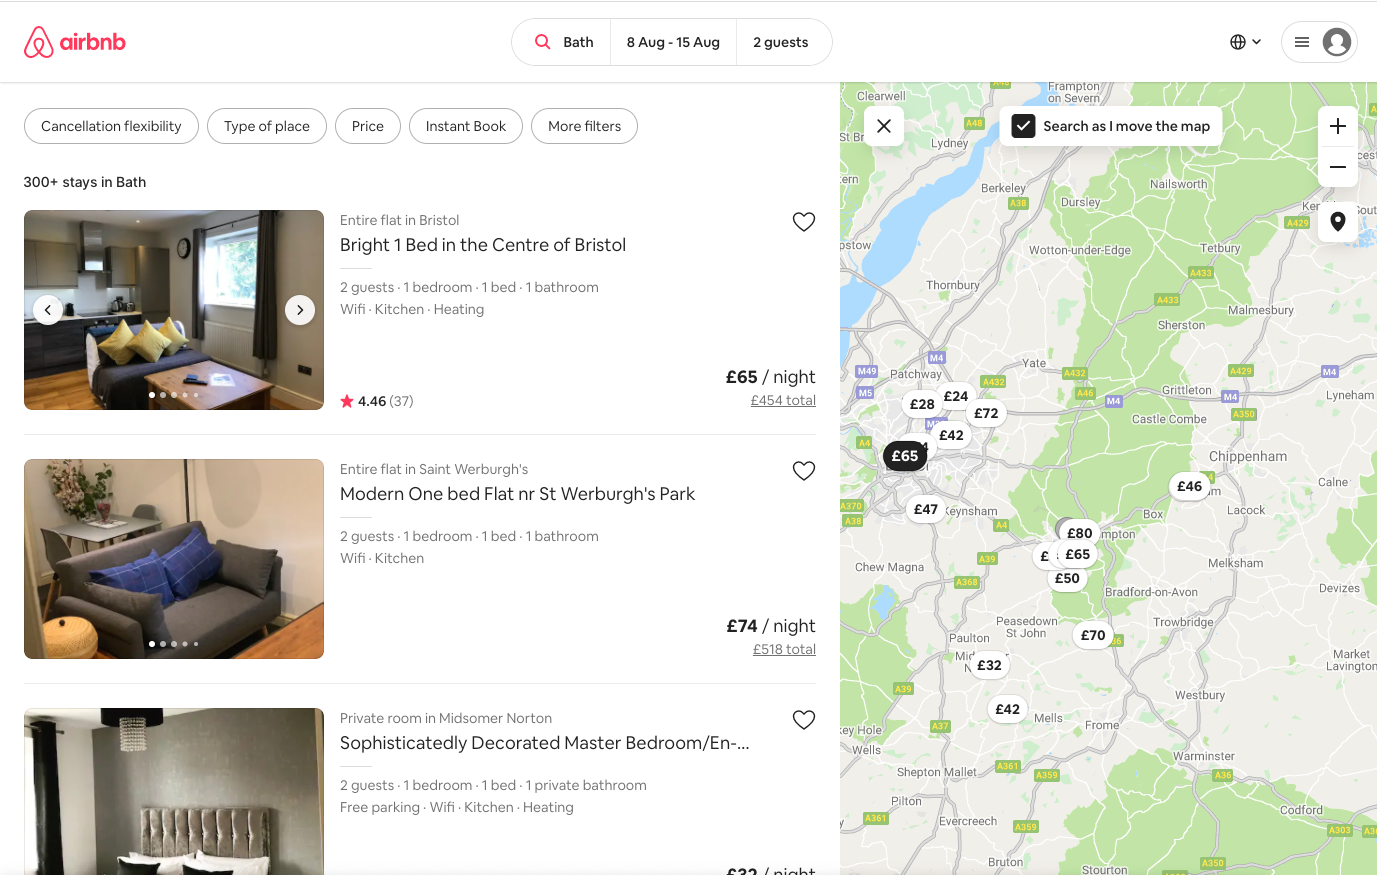 A redesign of Airbnb's 'Stays in Bath'